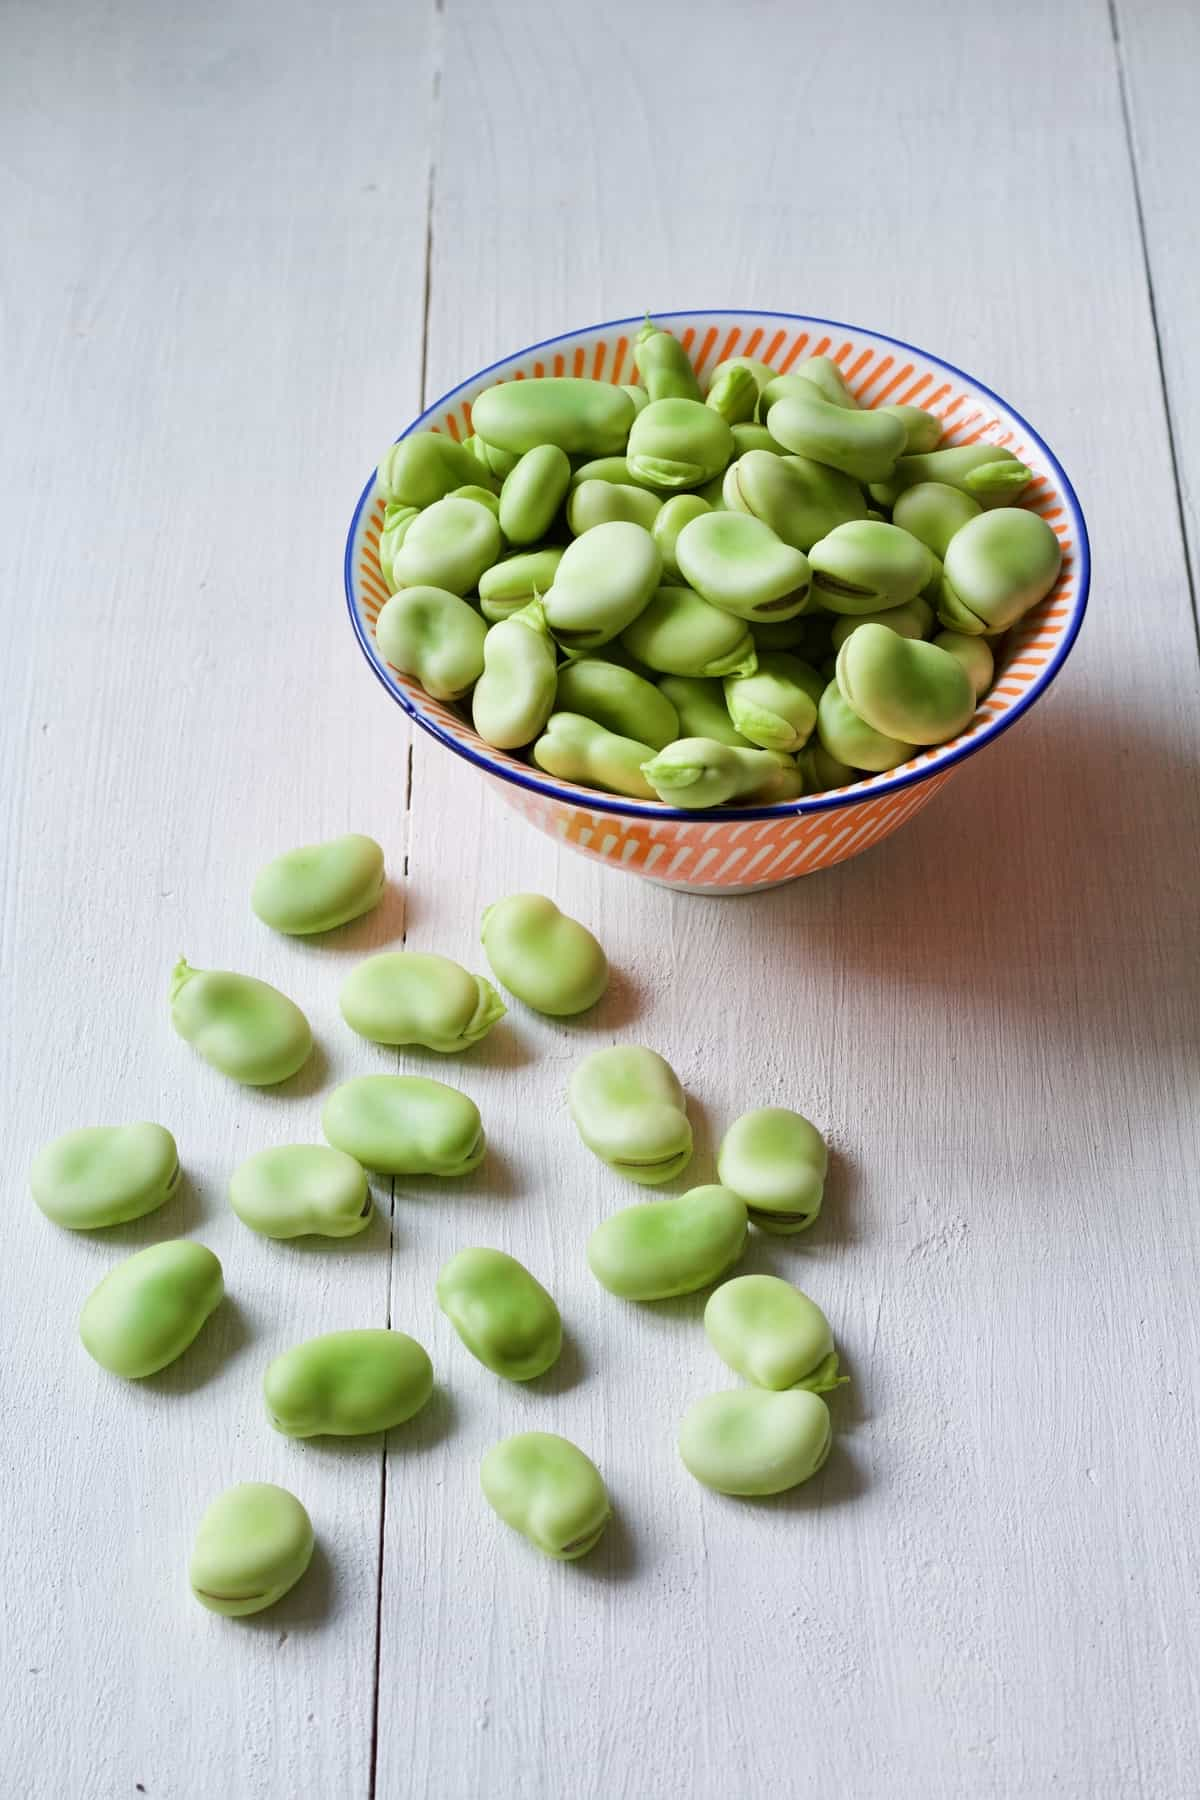 Skinned, raw broad beans in a bowl with some on a board.